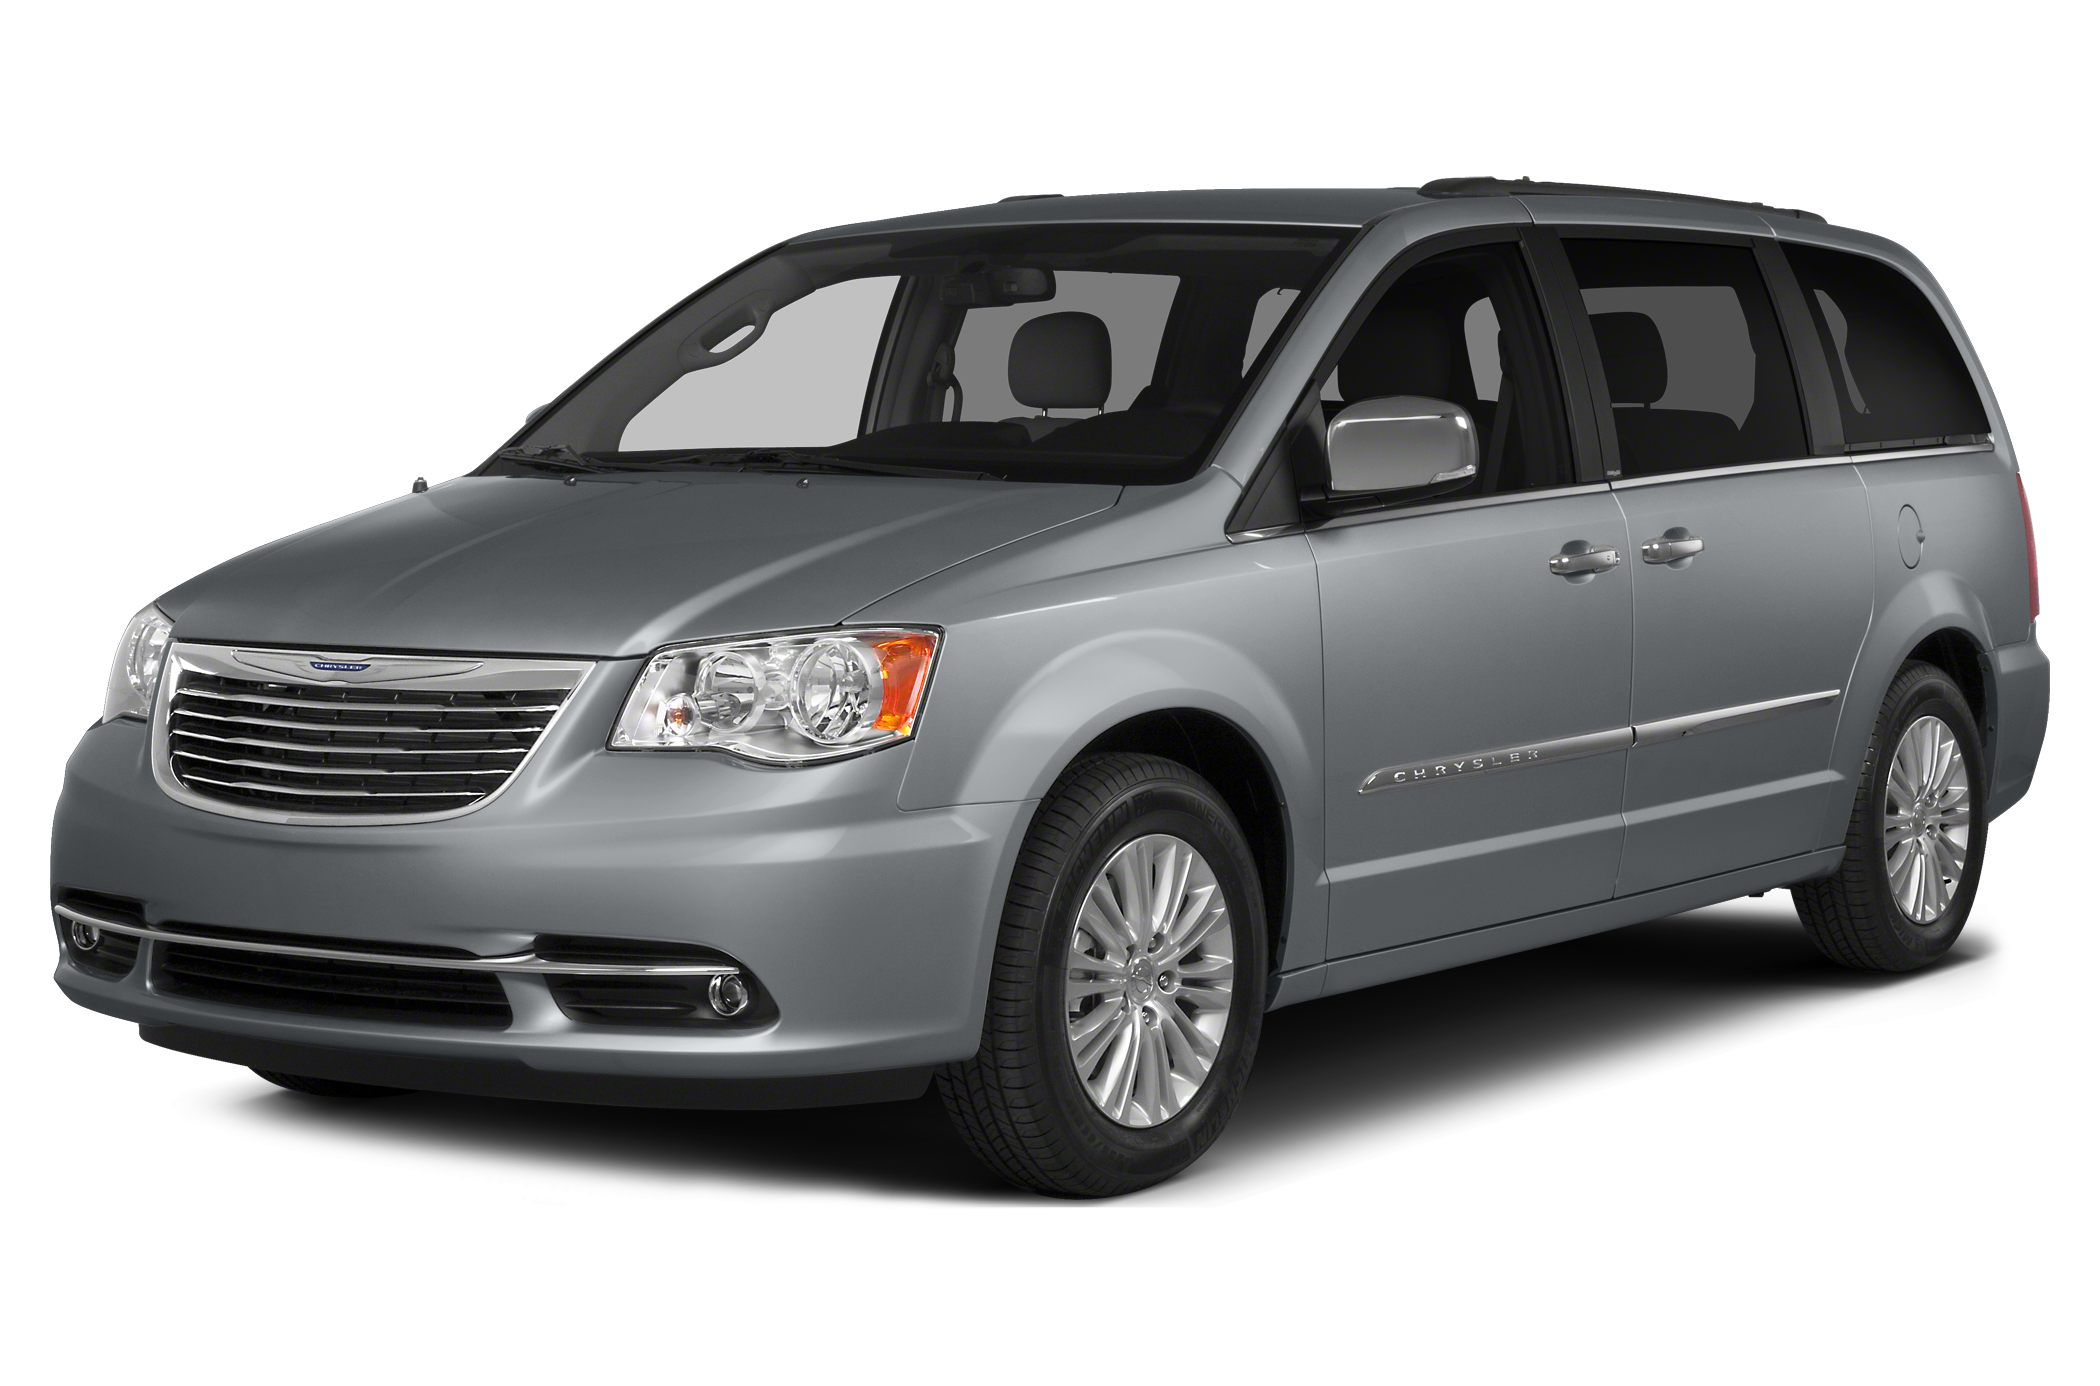 2016ChryslerTown & Country